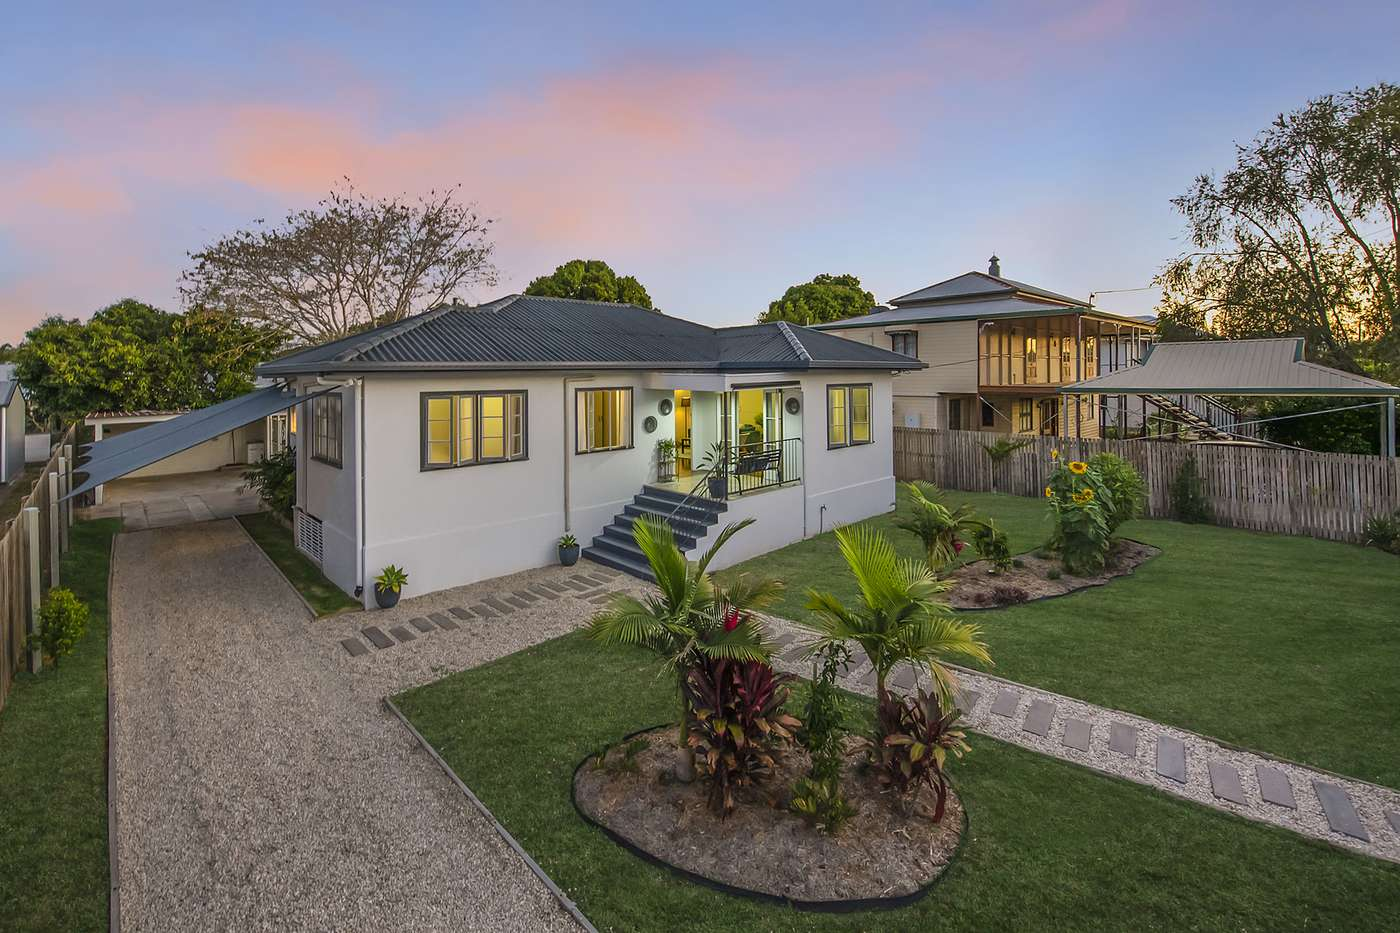 Main view of Homely house listing, 21 Norris Street, Hermit Park, QLD 4812